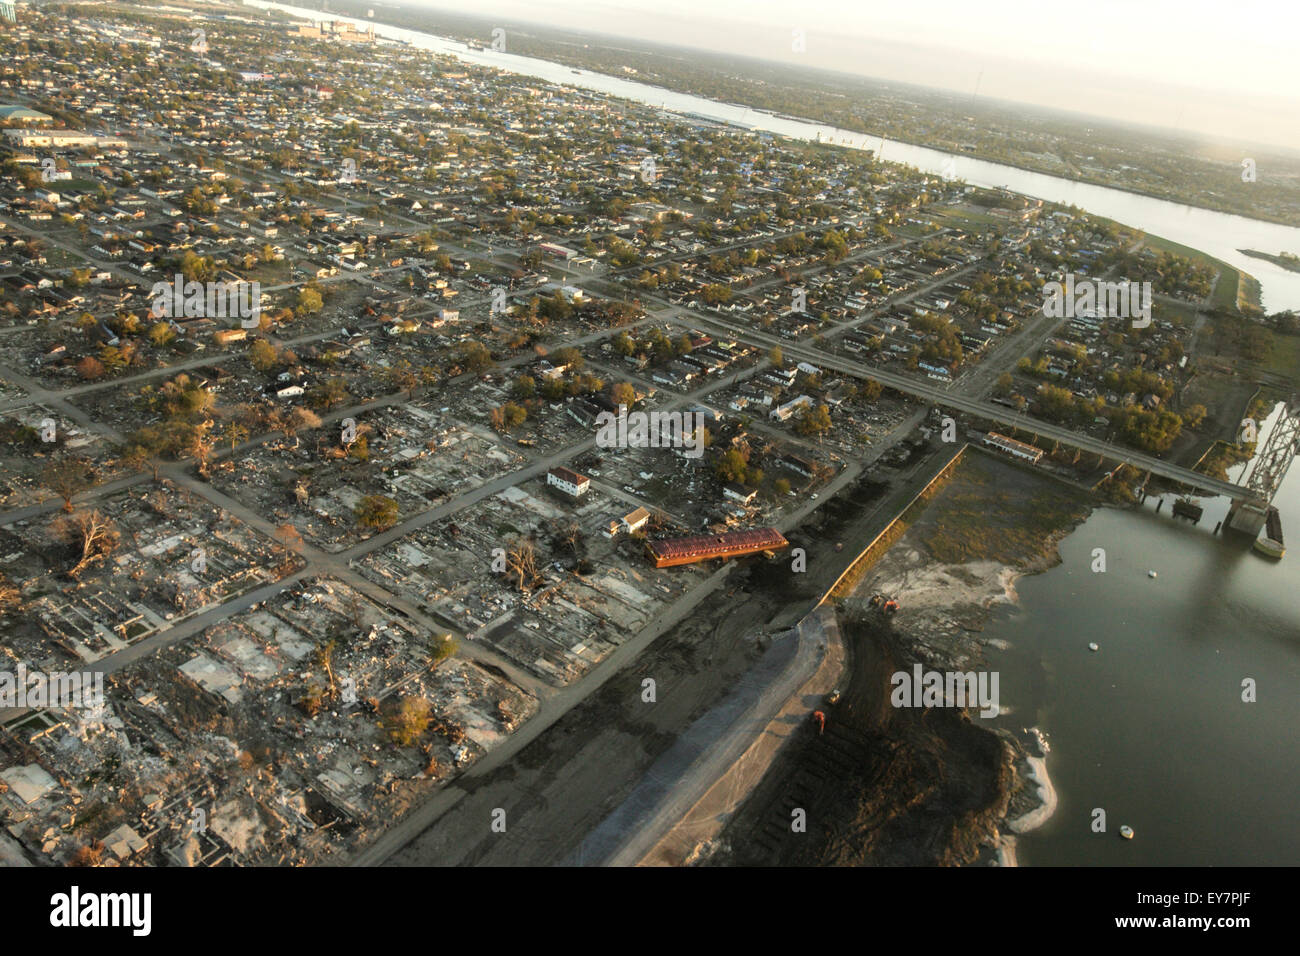 Aerial view of levee breach by a barge in New Orleans' Lower Ninth Ward in the aftermath of Hurricane Katrina. - Stock Image